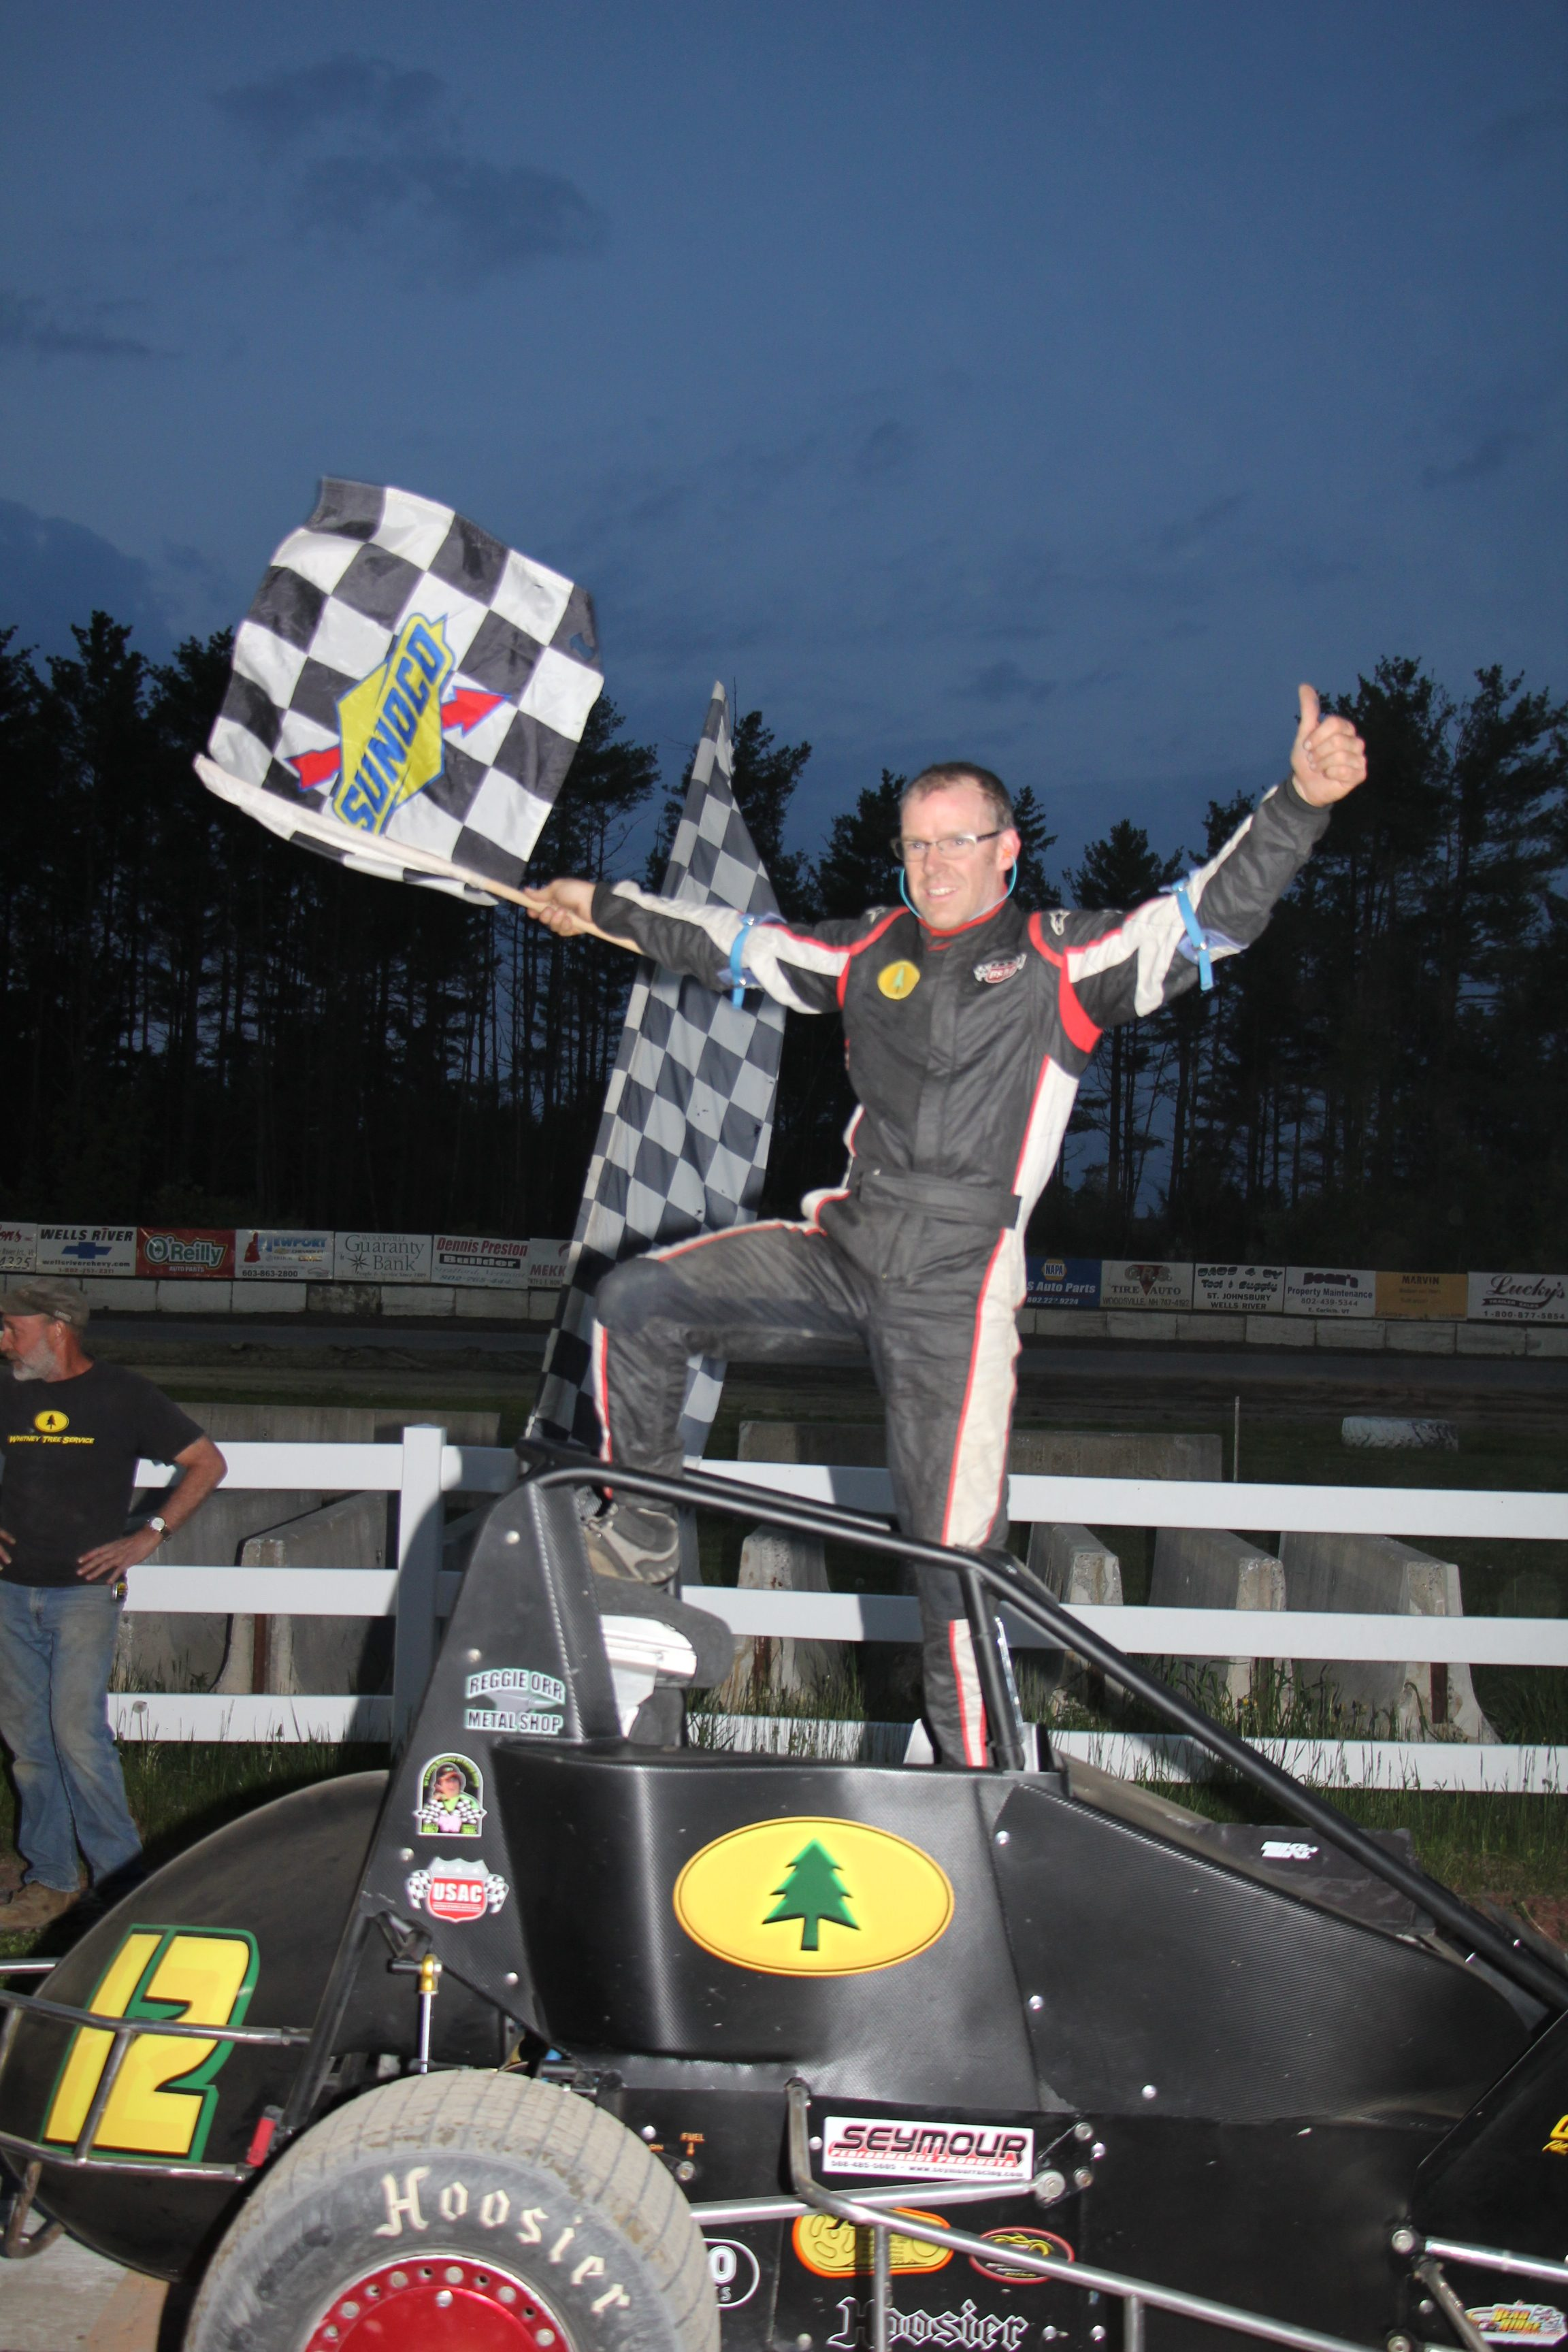 It's All Adam Whitney for The Win in USAC Dirt Midget Association Race